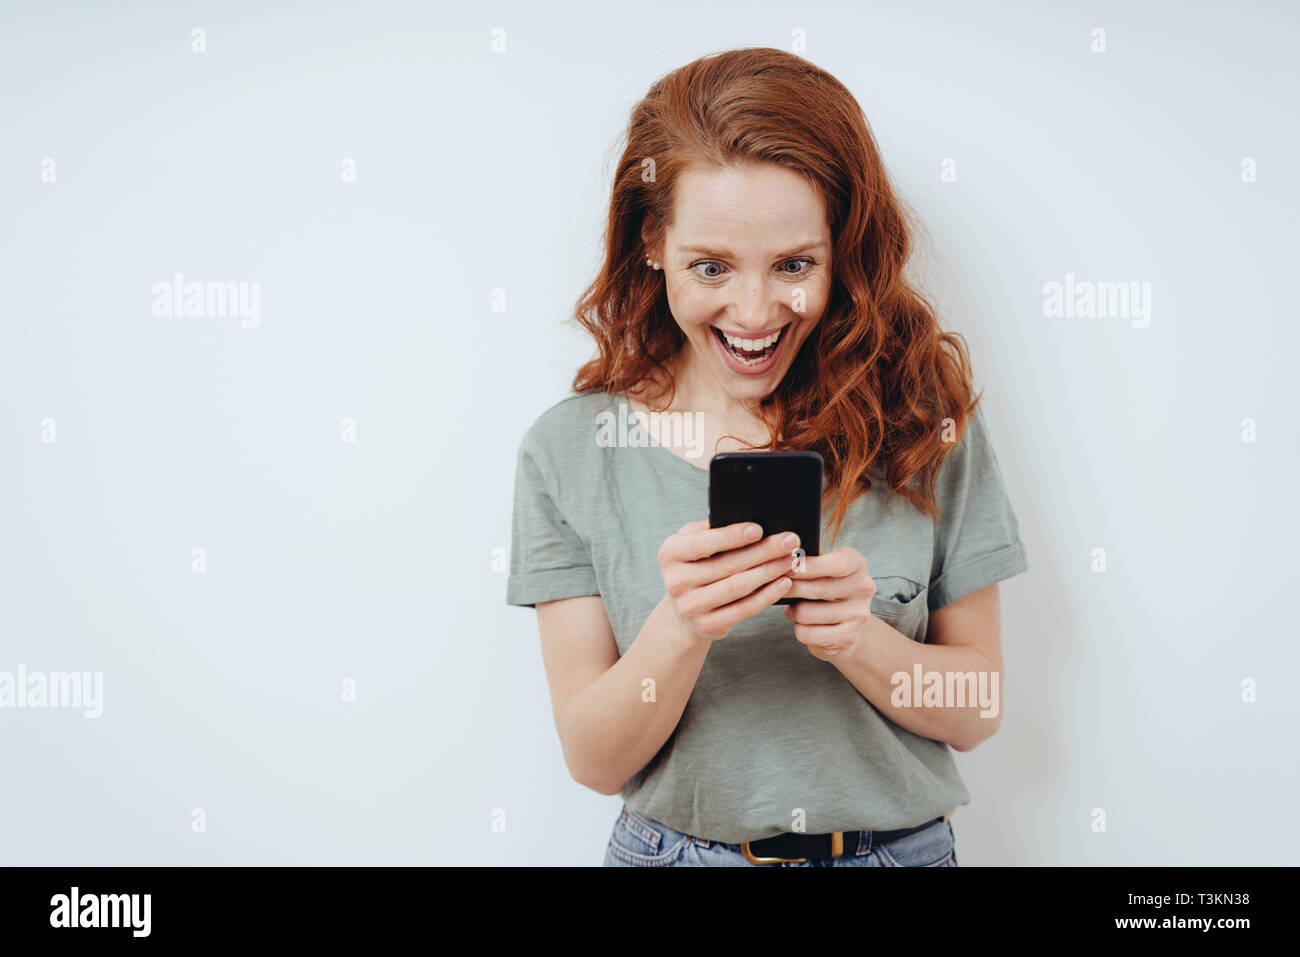 Gleeful young woman receiving good news on her mobile phone reading the message with a beaming smile and look of amazement - Stock Image